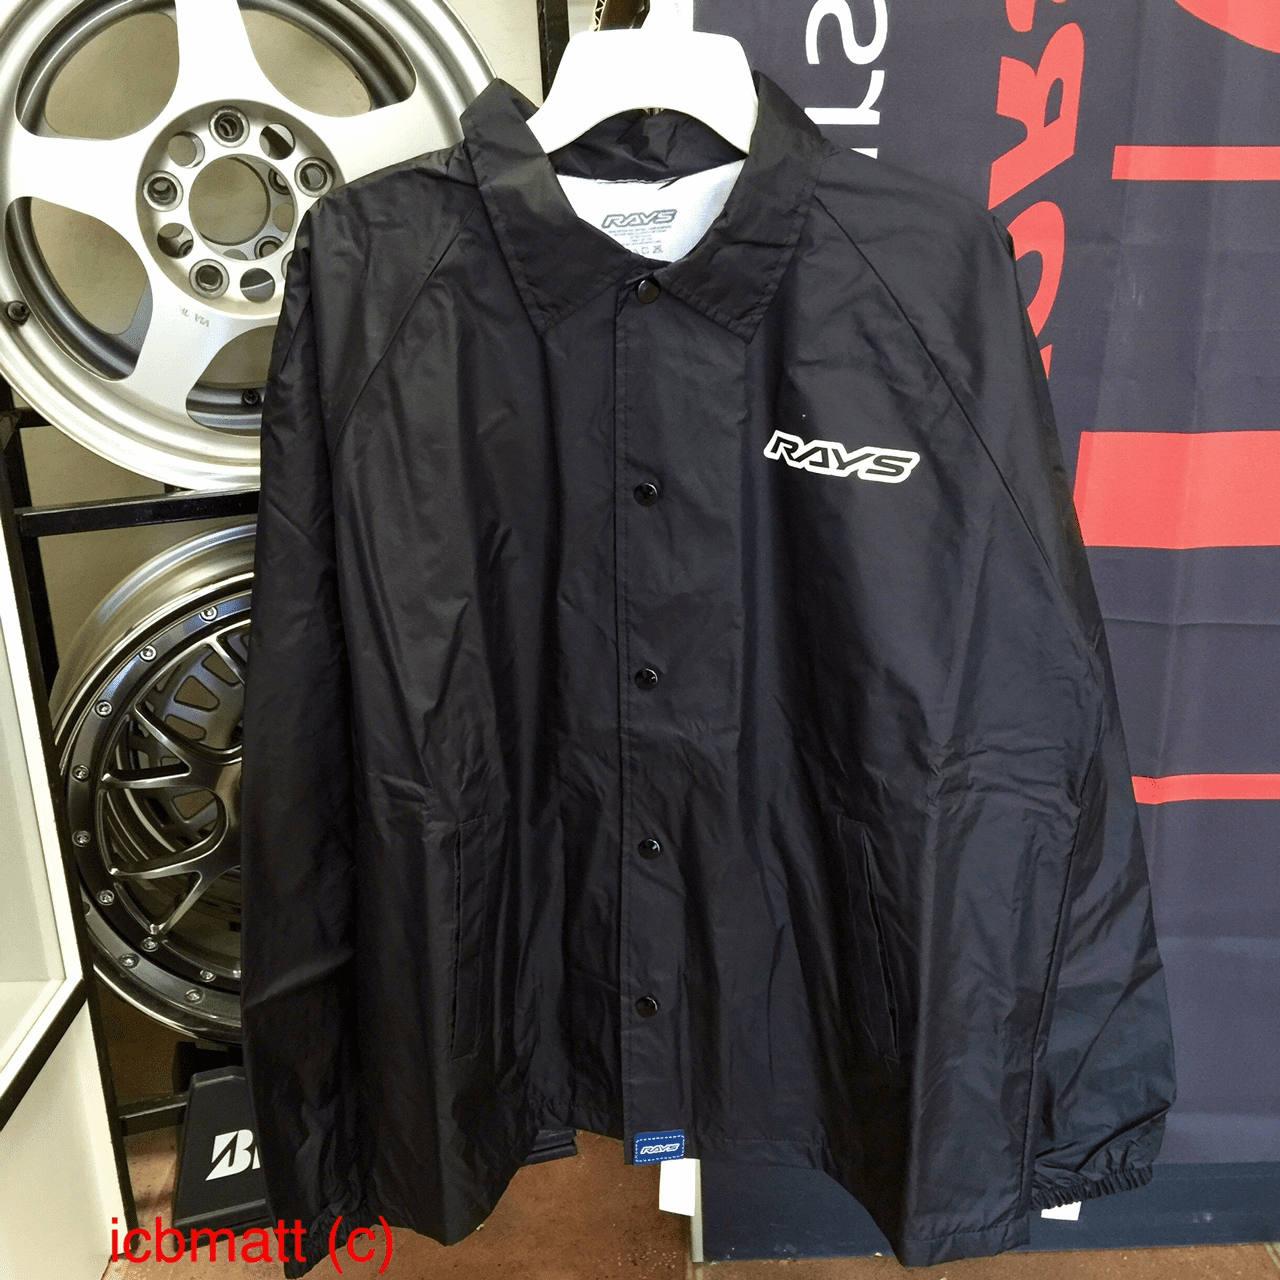 RAYS Engineering Volk Racing Original Windbreaker